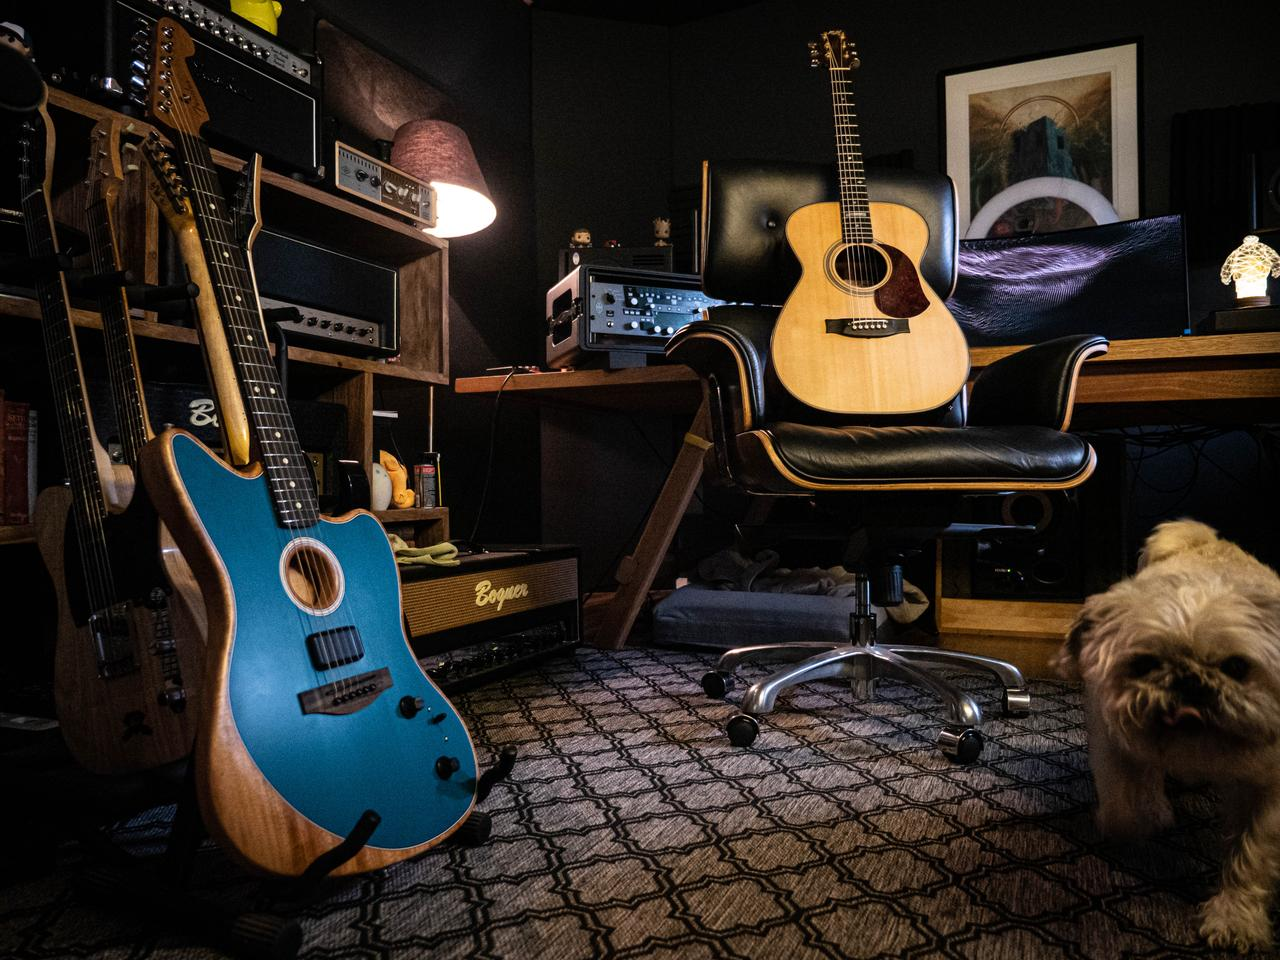 In our back-to-back tests, the Acoustasonic stood up surprisingly well against a nice stage acoustic in the Maton 808. Oscar the dog approves, too